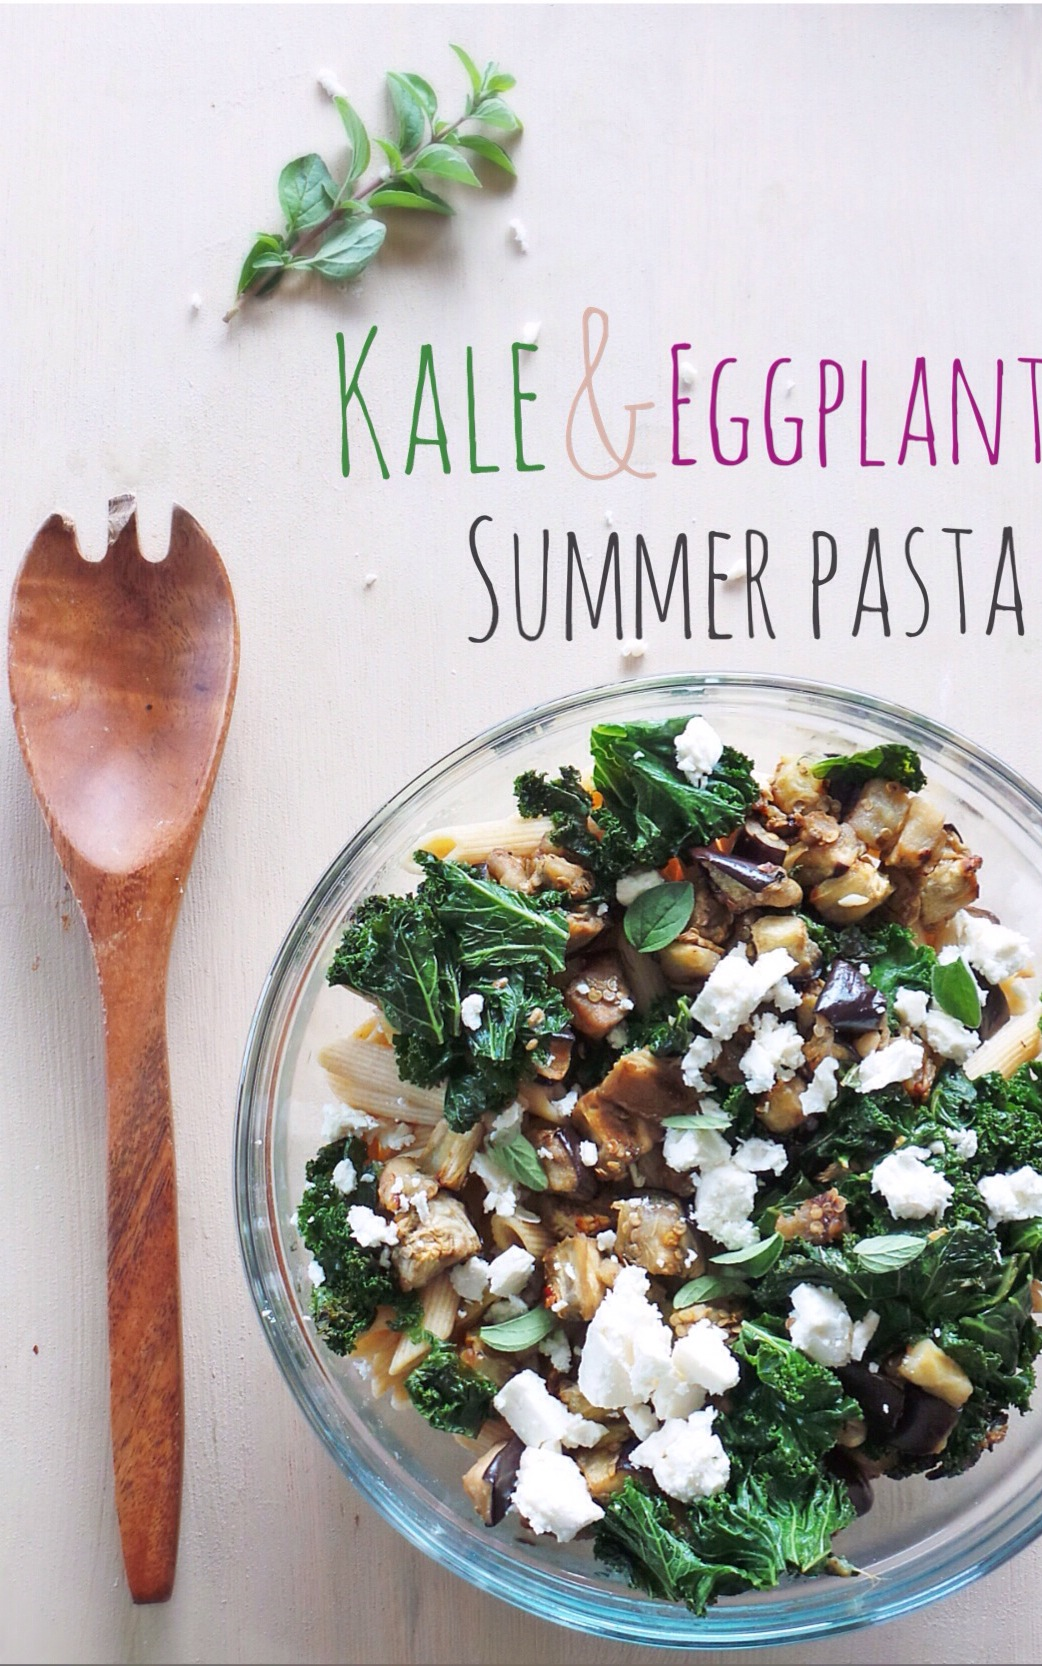 Kale & Eggplant Summer Pasta @ Vodka & Biscuits